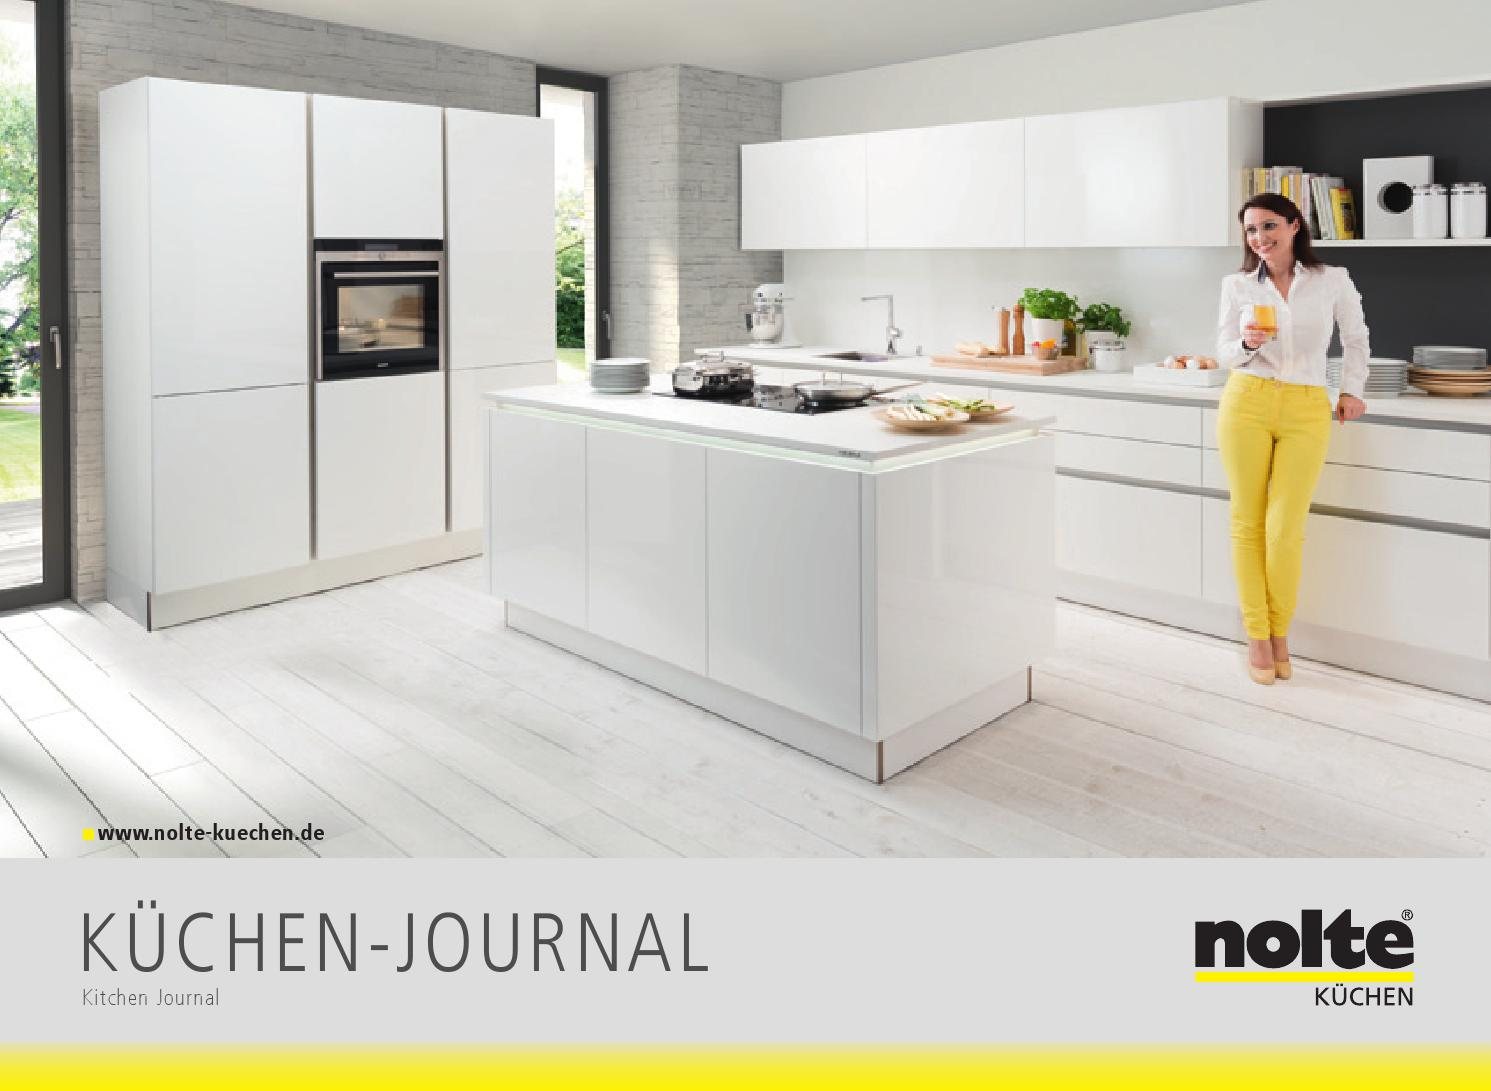 Meyer Nolte Küchen Journal 2015 by Perspektive Werbeagentur ...